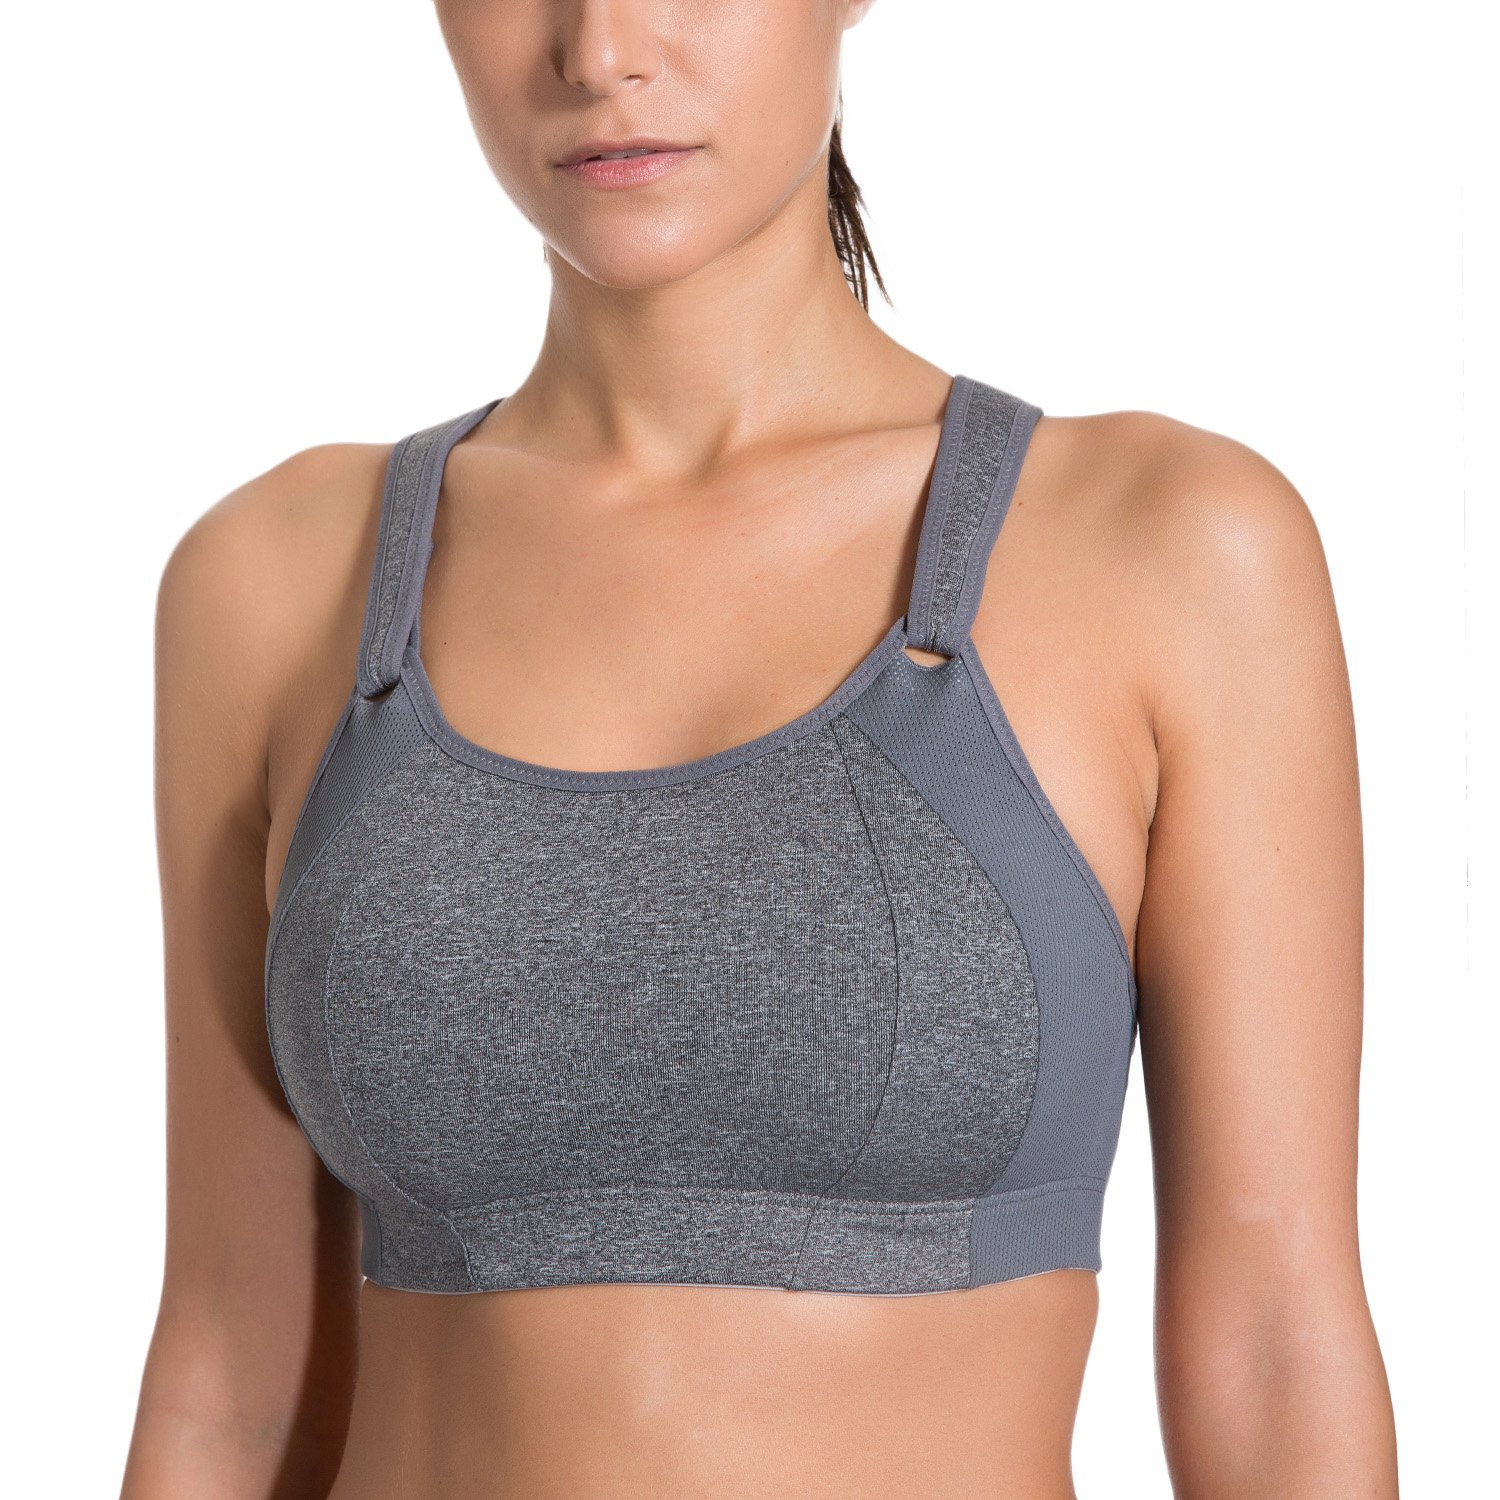 SYROKAN Women's Front Adjustable Lightly Padded Racerback High Impact Sports Bra Grey 34DD